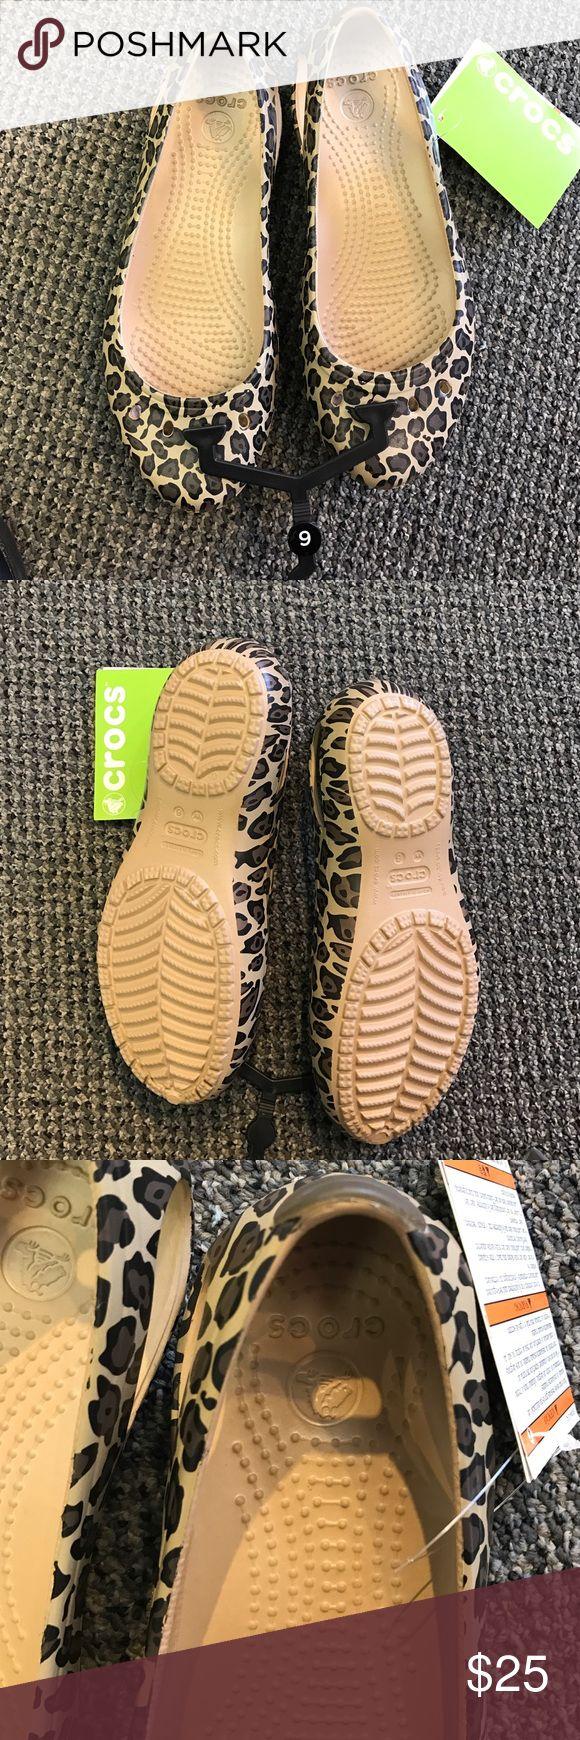 Crocs leopard flat shoes size 6 NWT Crocs leopard flat shoes size 6 great print with all the comfort of Crocs * new with tags!  * kadee leopard * make me an offer! * never worn * too bad they don't fit me! CROCS Shoes Flats & Loafers